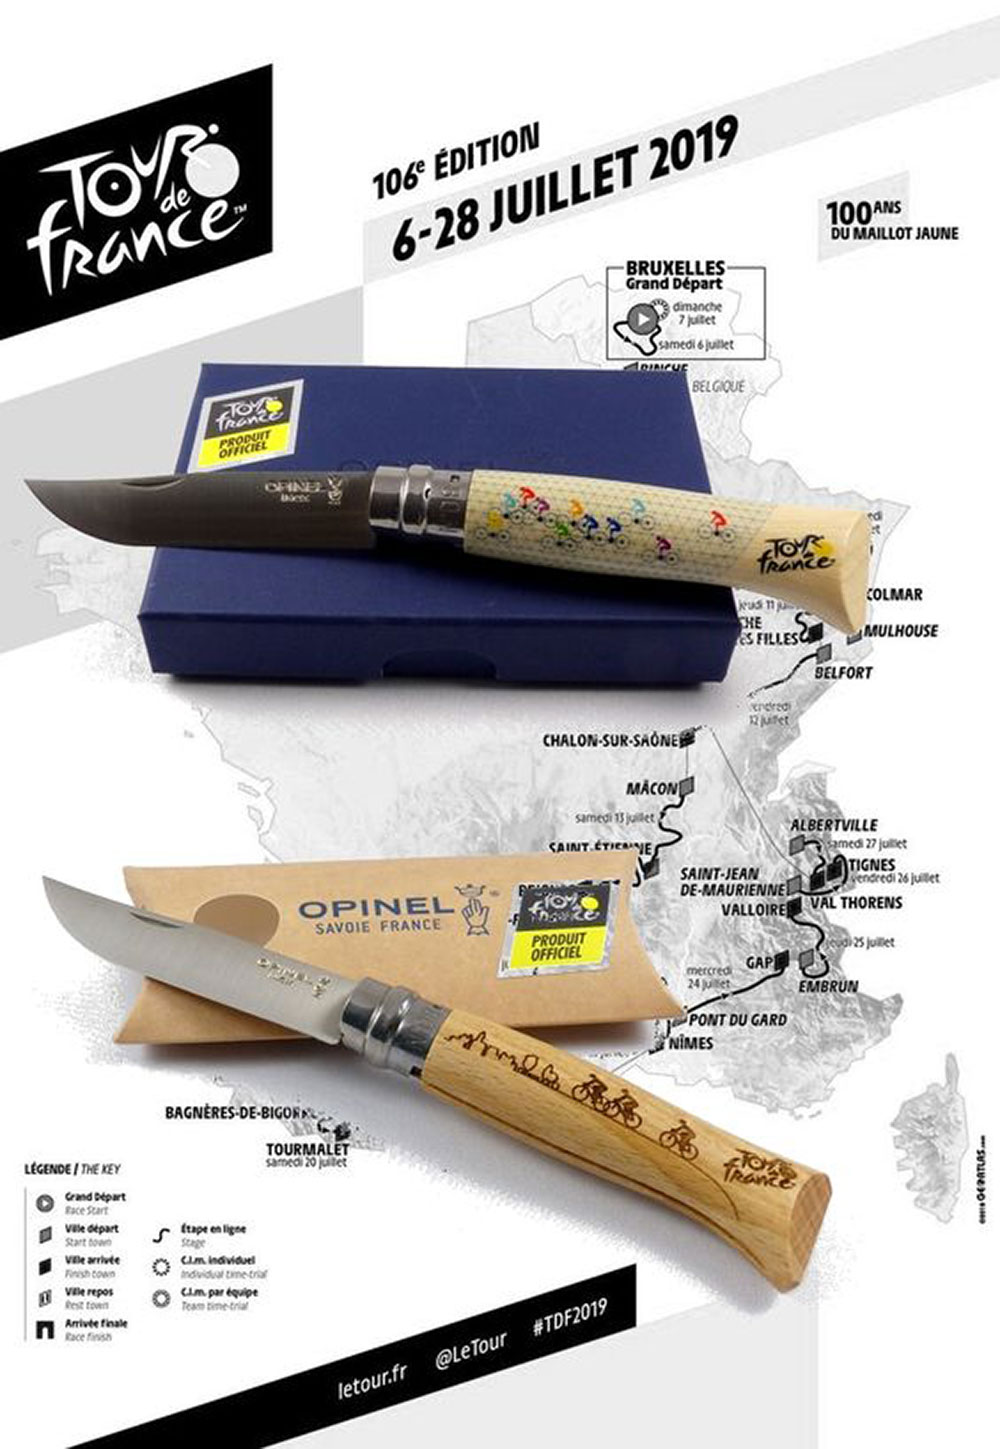 Coltello a serramanico Opinel per il Tour de France 2019